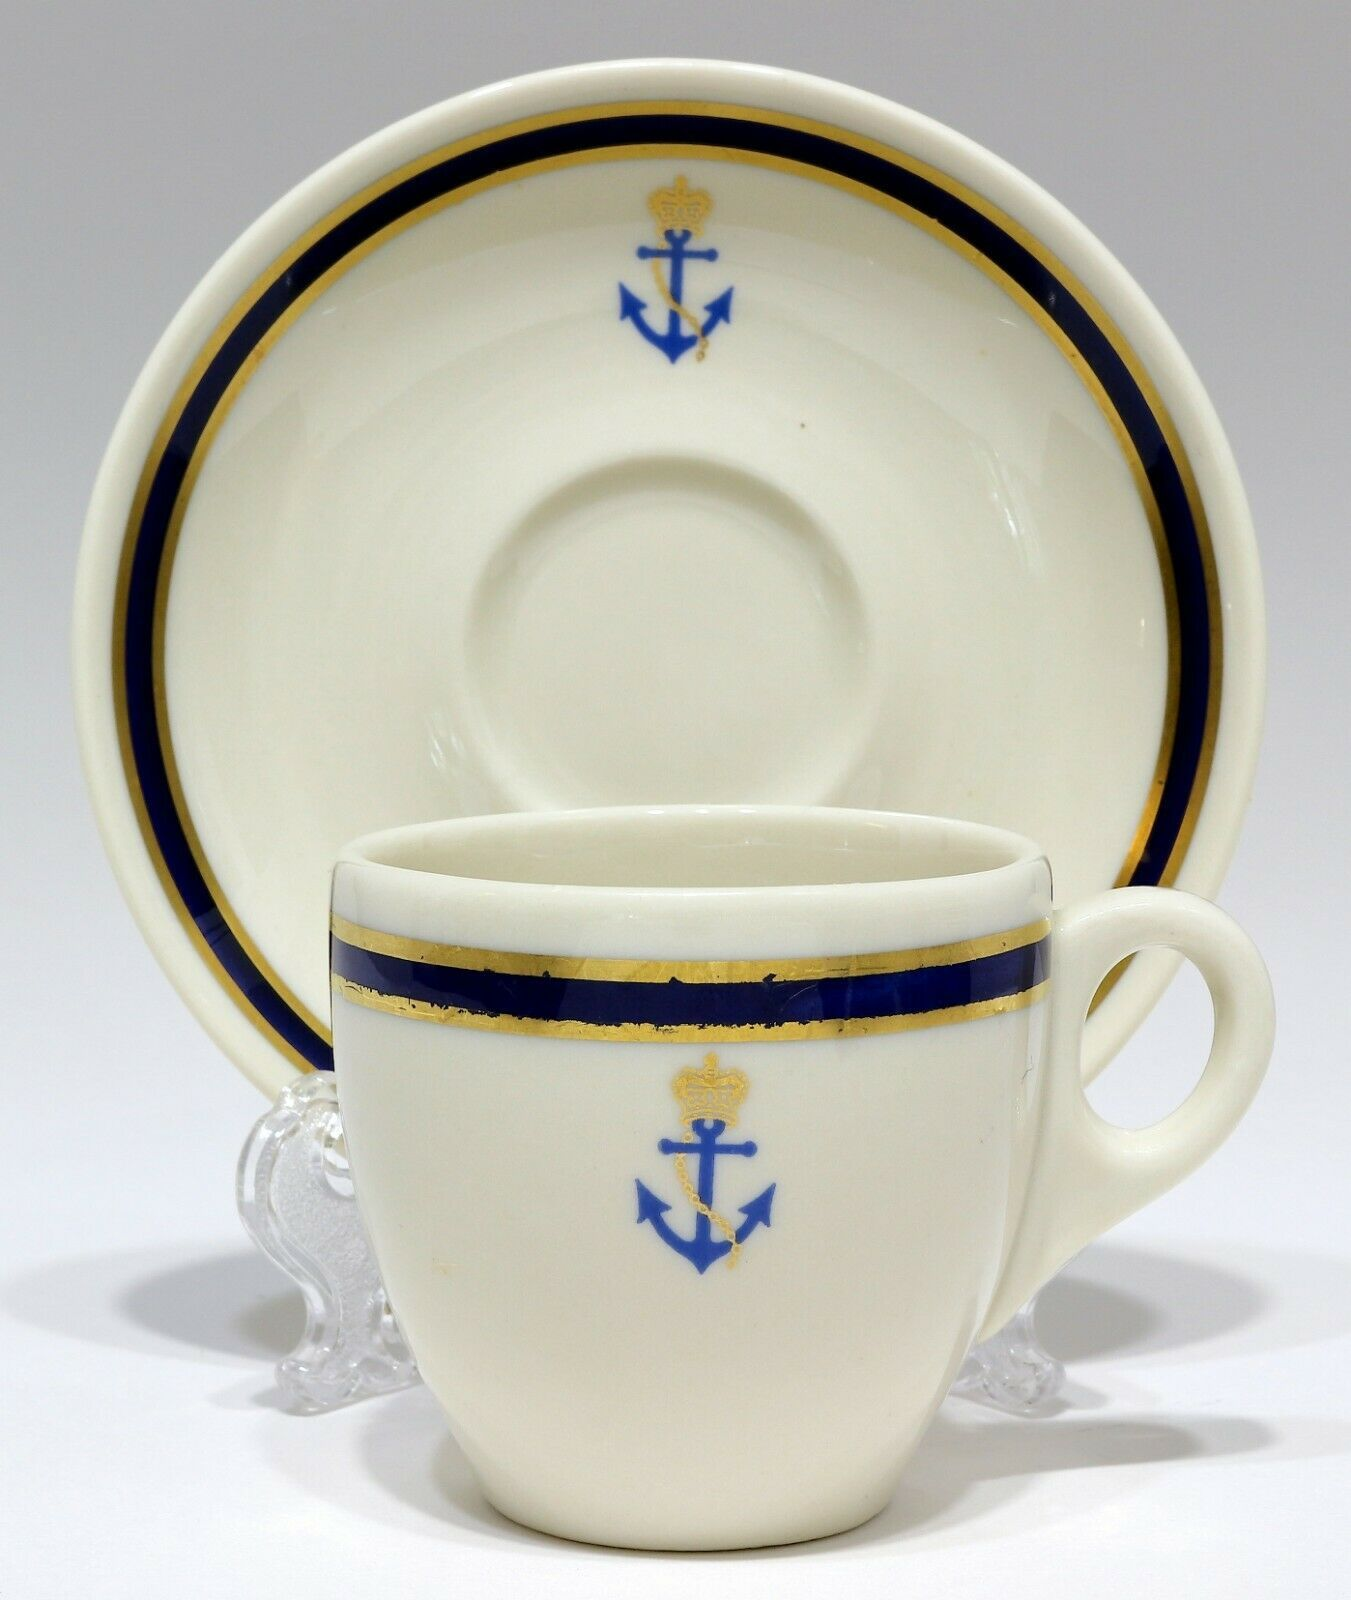 Primary image for RARE 1948 Syracuse China Demitasse Cup & Saucer CROWN ANCHOR GOLD BLUE NAVY